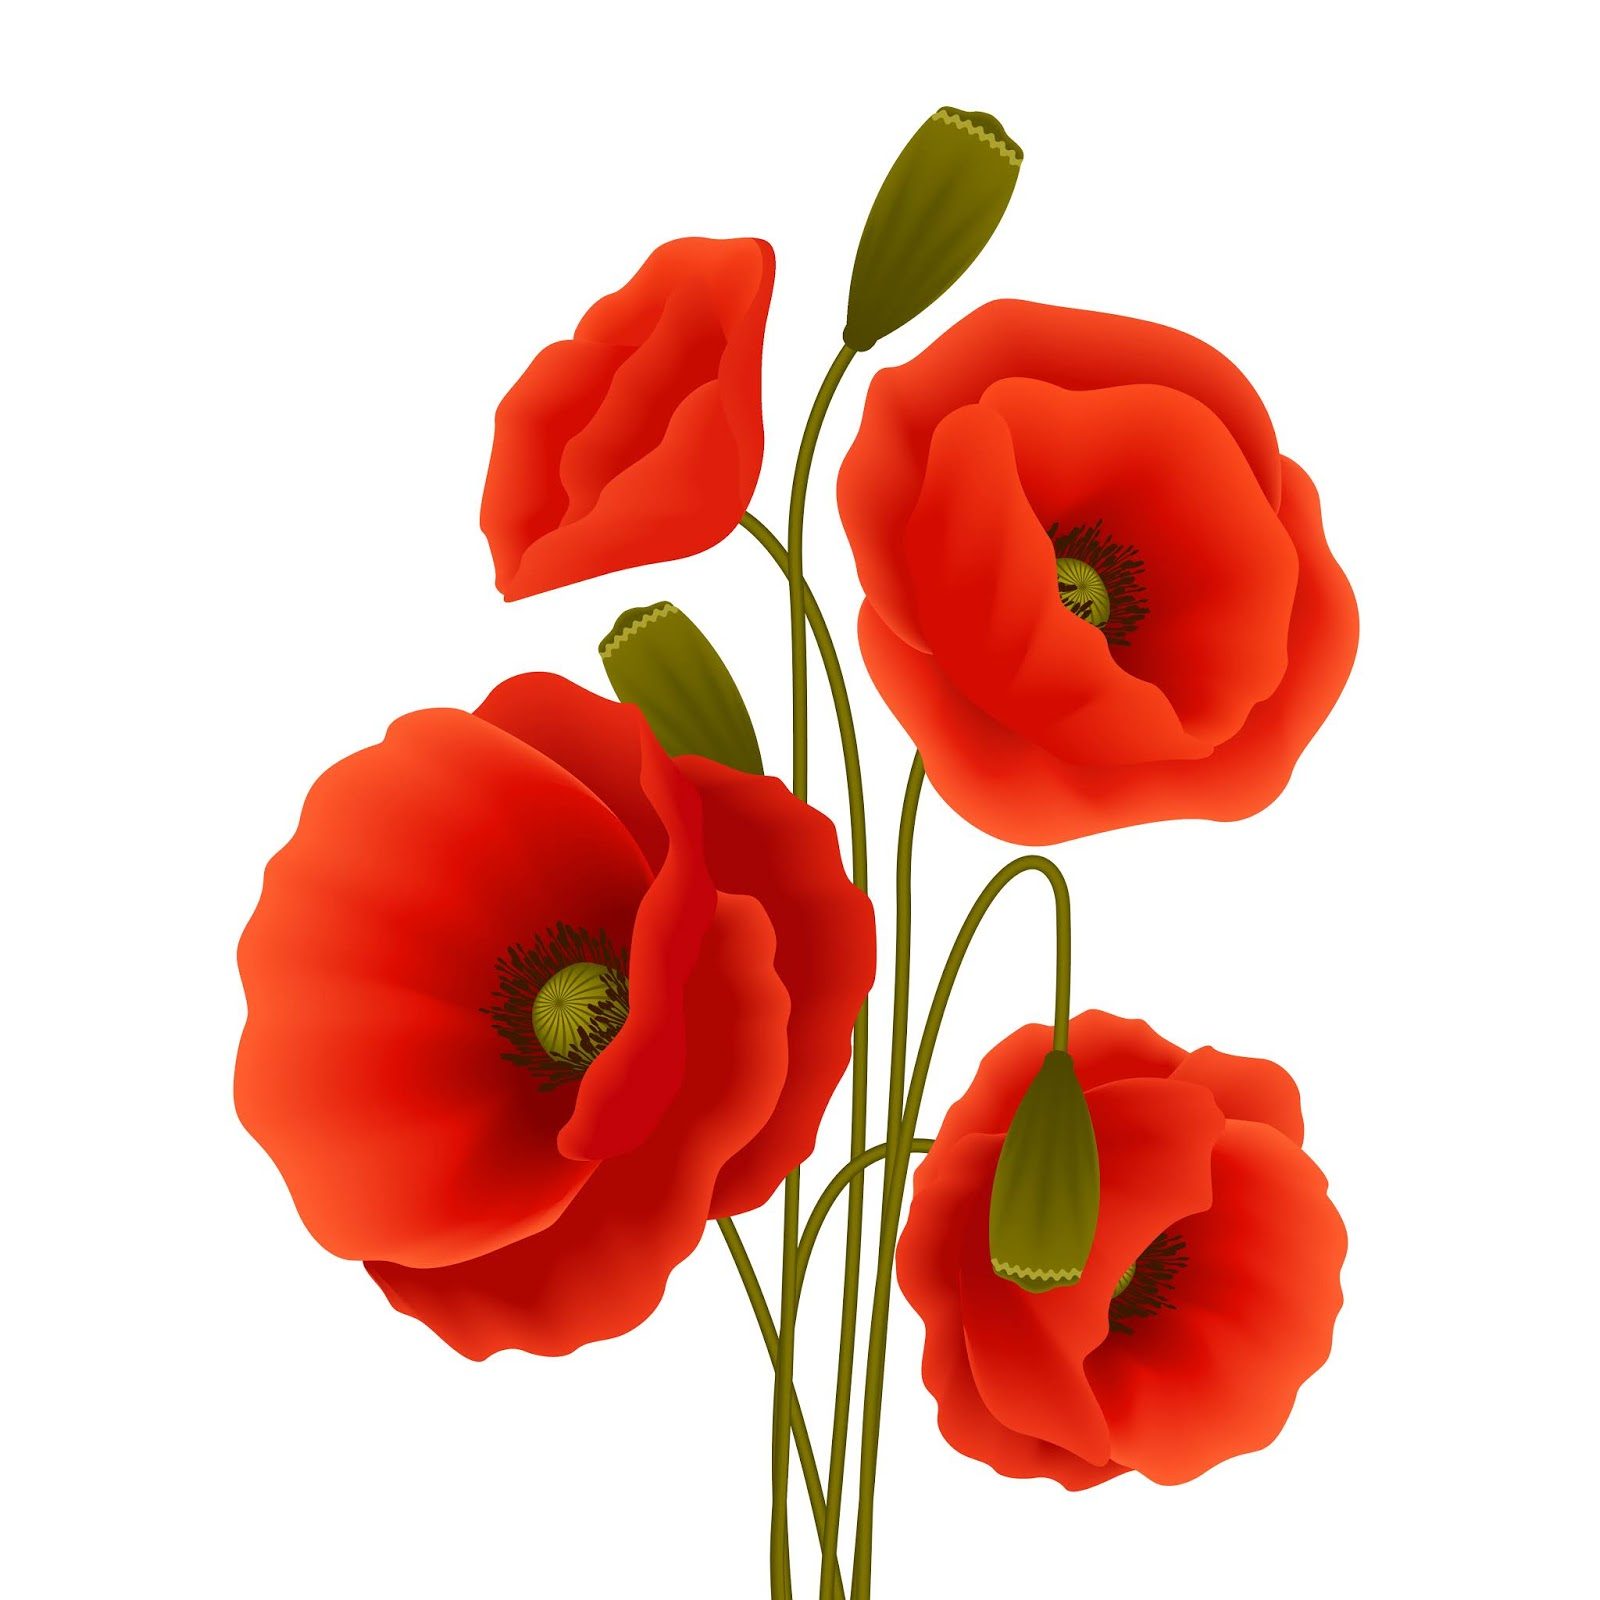 Poppy Flower Poster Free Download Vector CDR, AI, EPS and PNG Formats